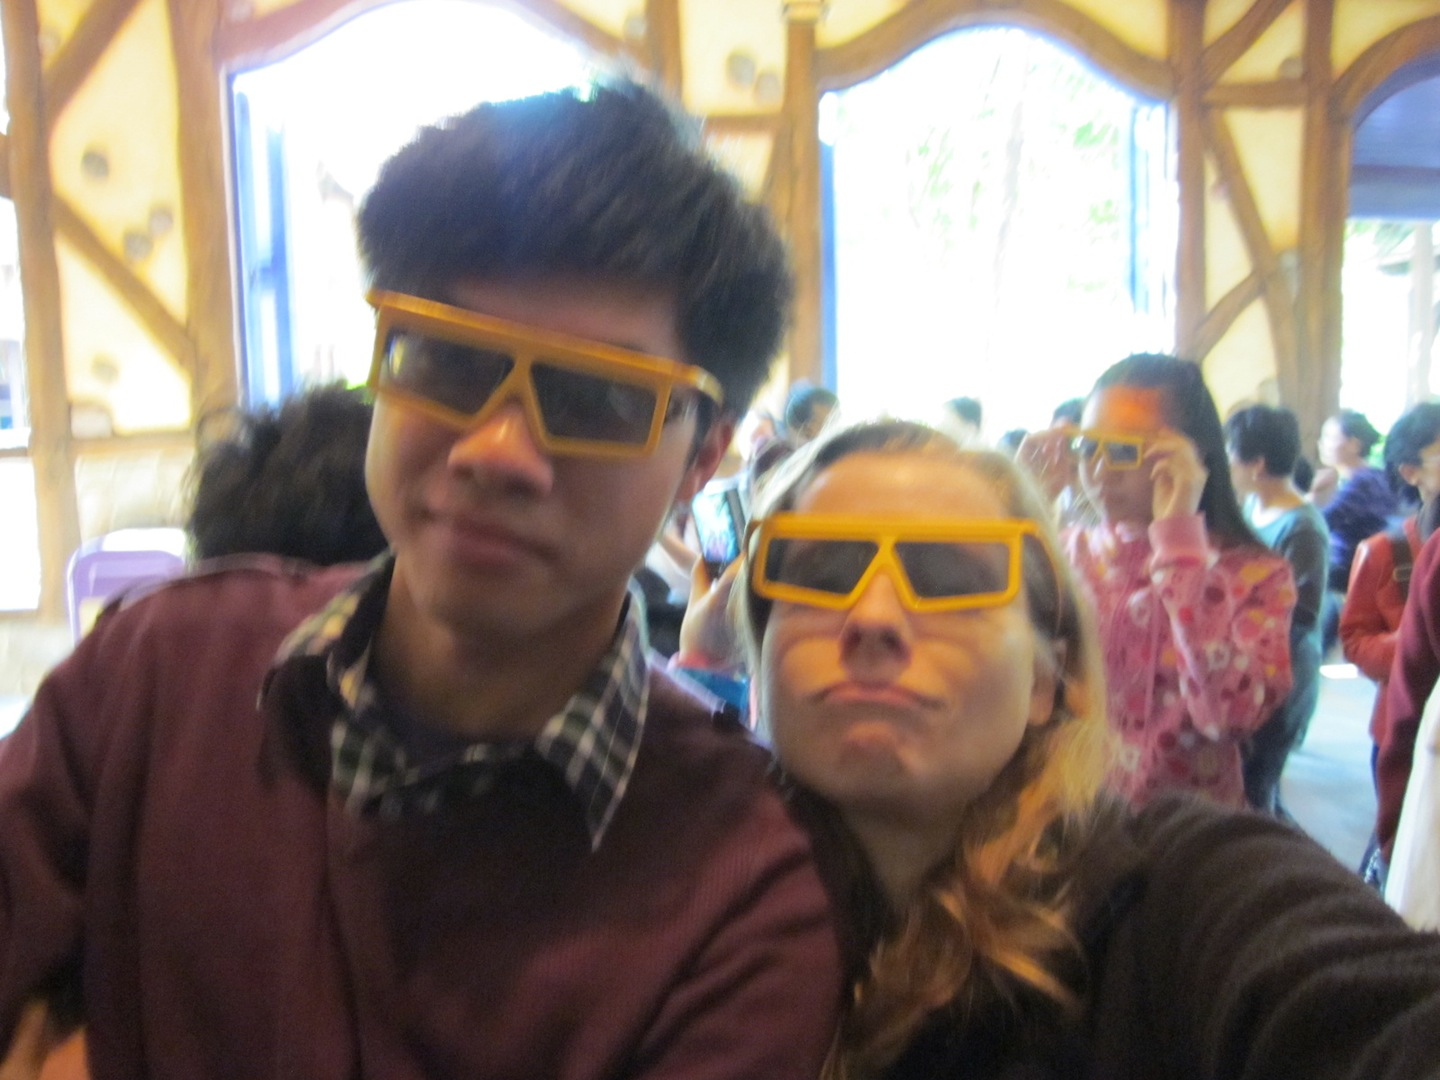 Color and I at Disney Hong Kong looking cool in our 3D glasses.